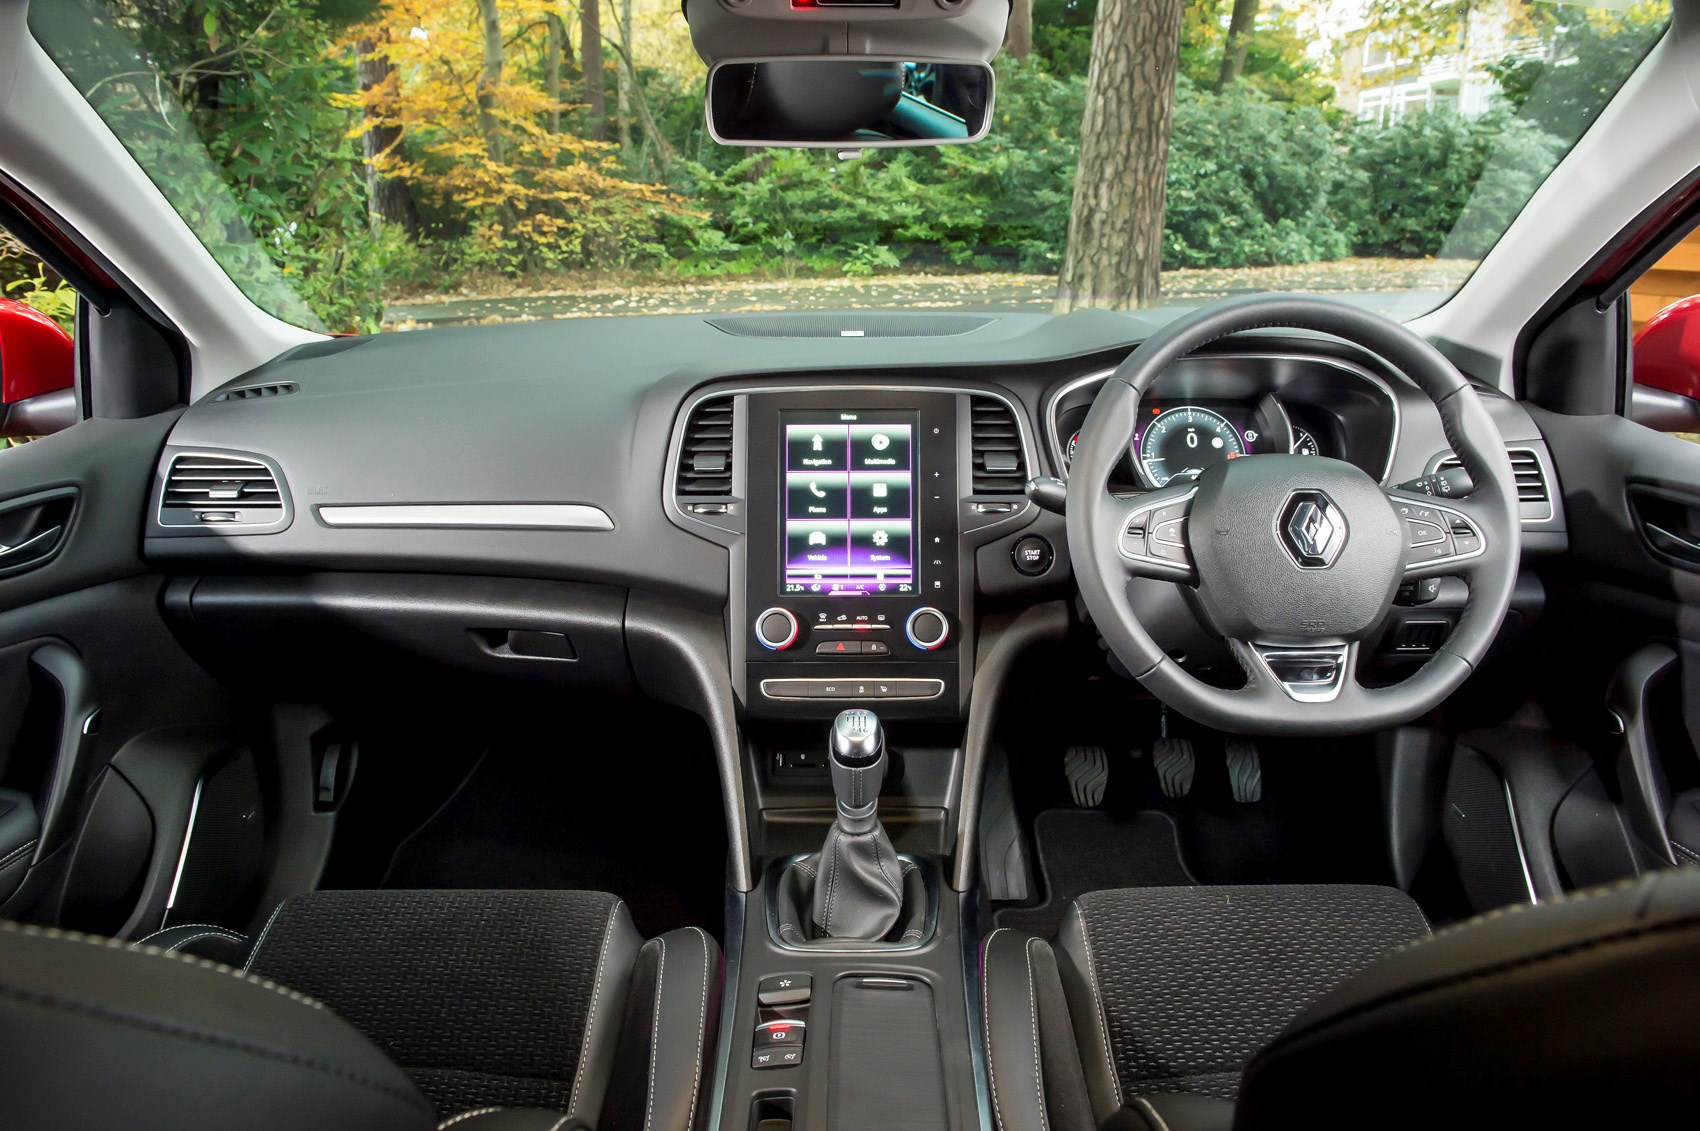 Renault Megane Sport Tourer equipment, safety and interior | Parkers